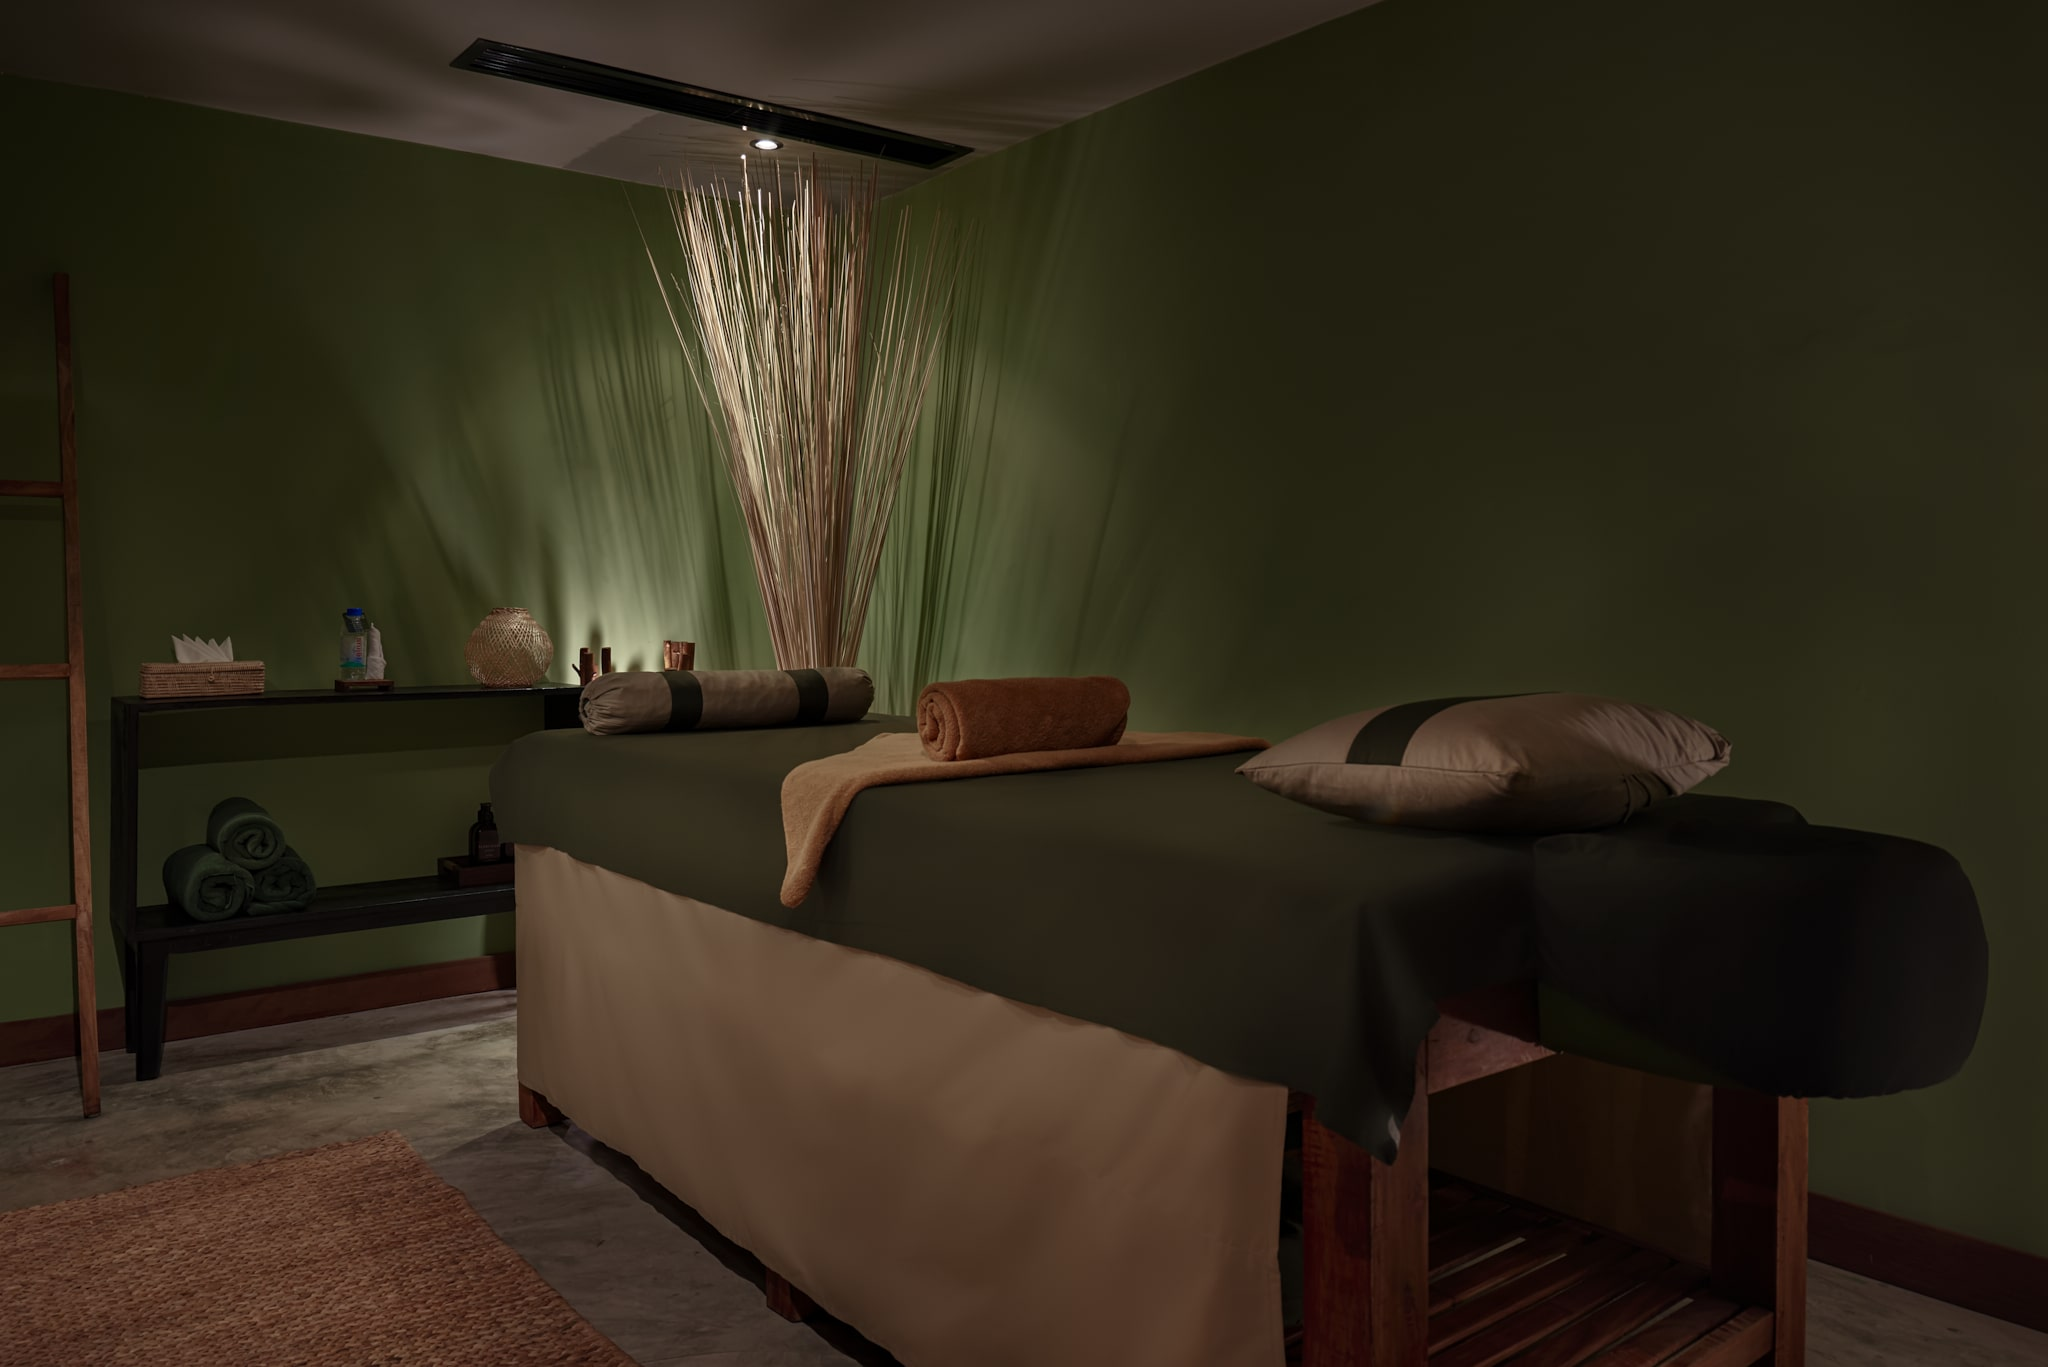 Baitong_Spa_by_Bodia_Single_Room